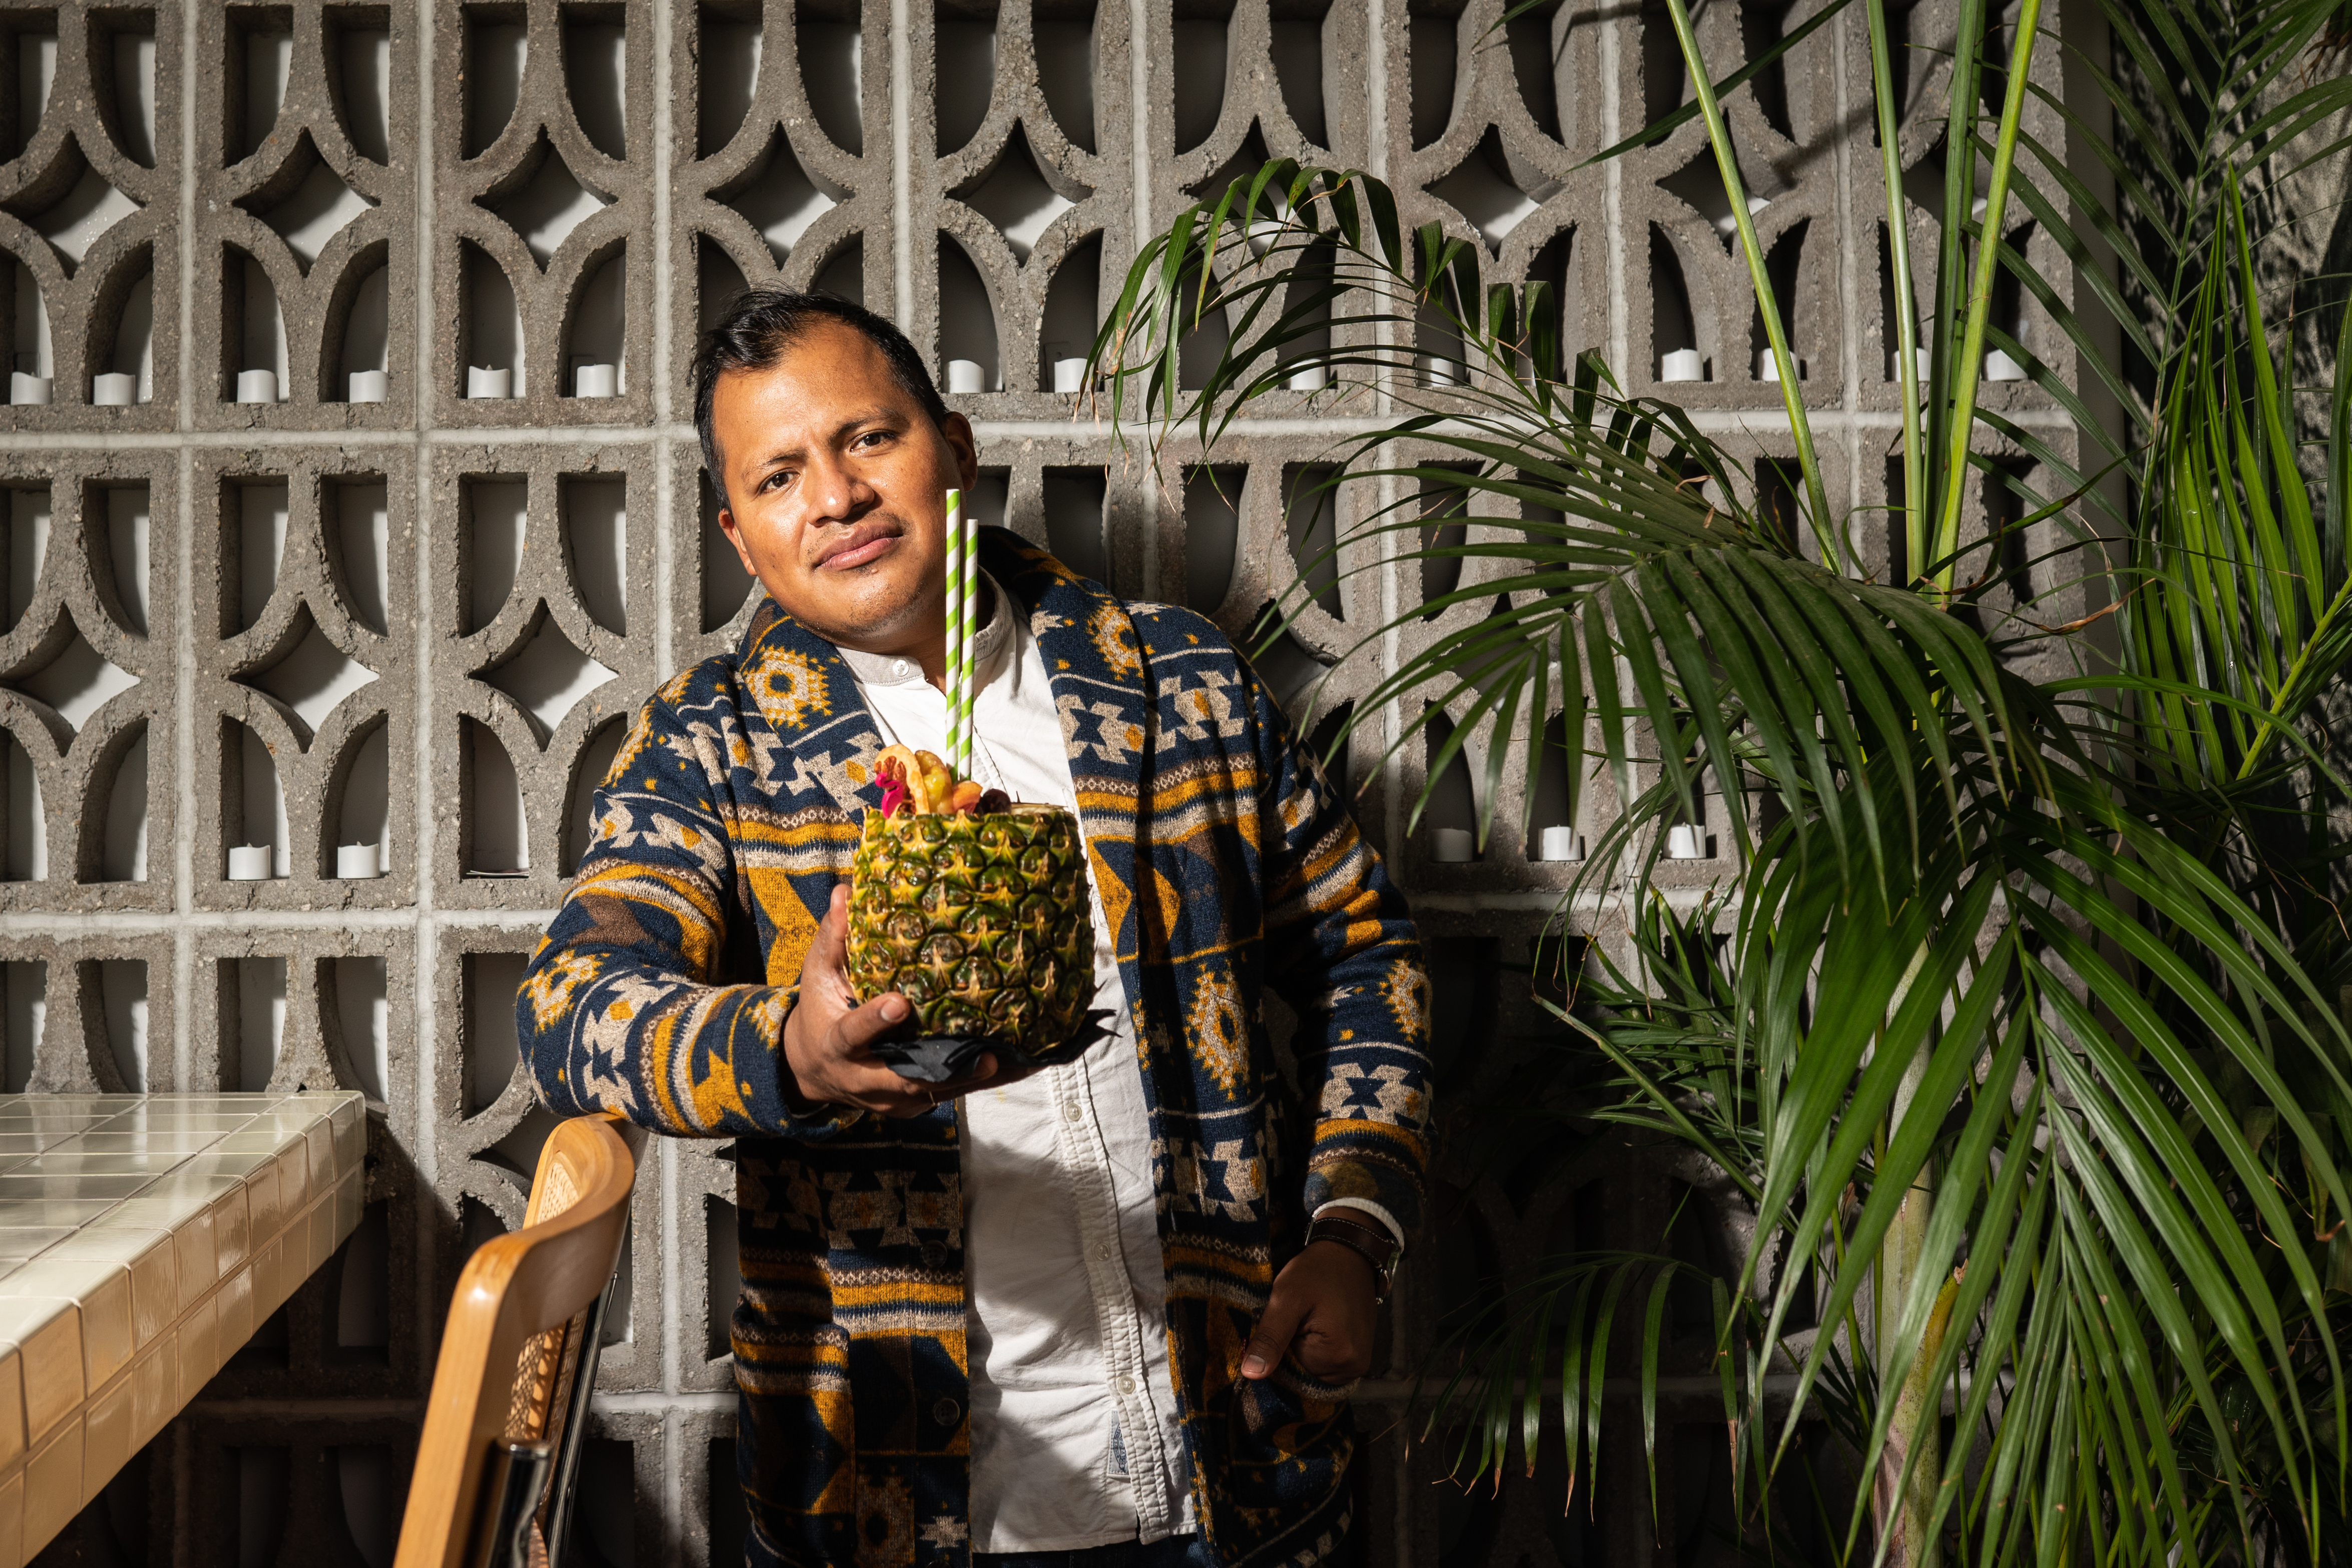 Alfredo holds a piña colada in his hand,